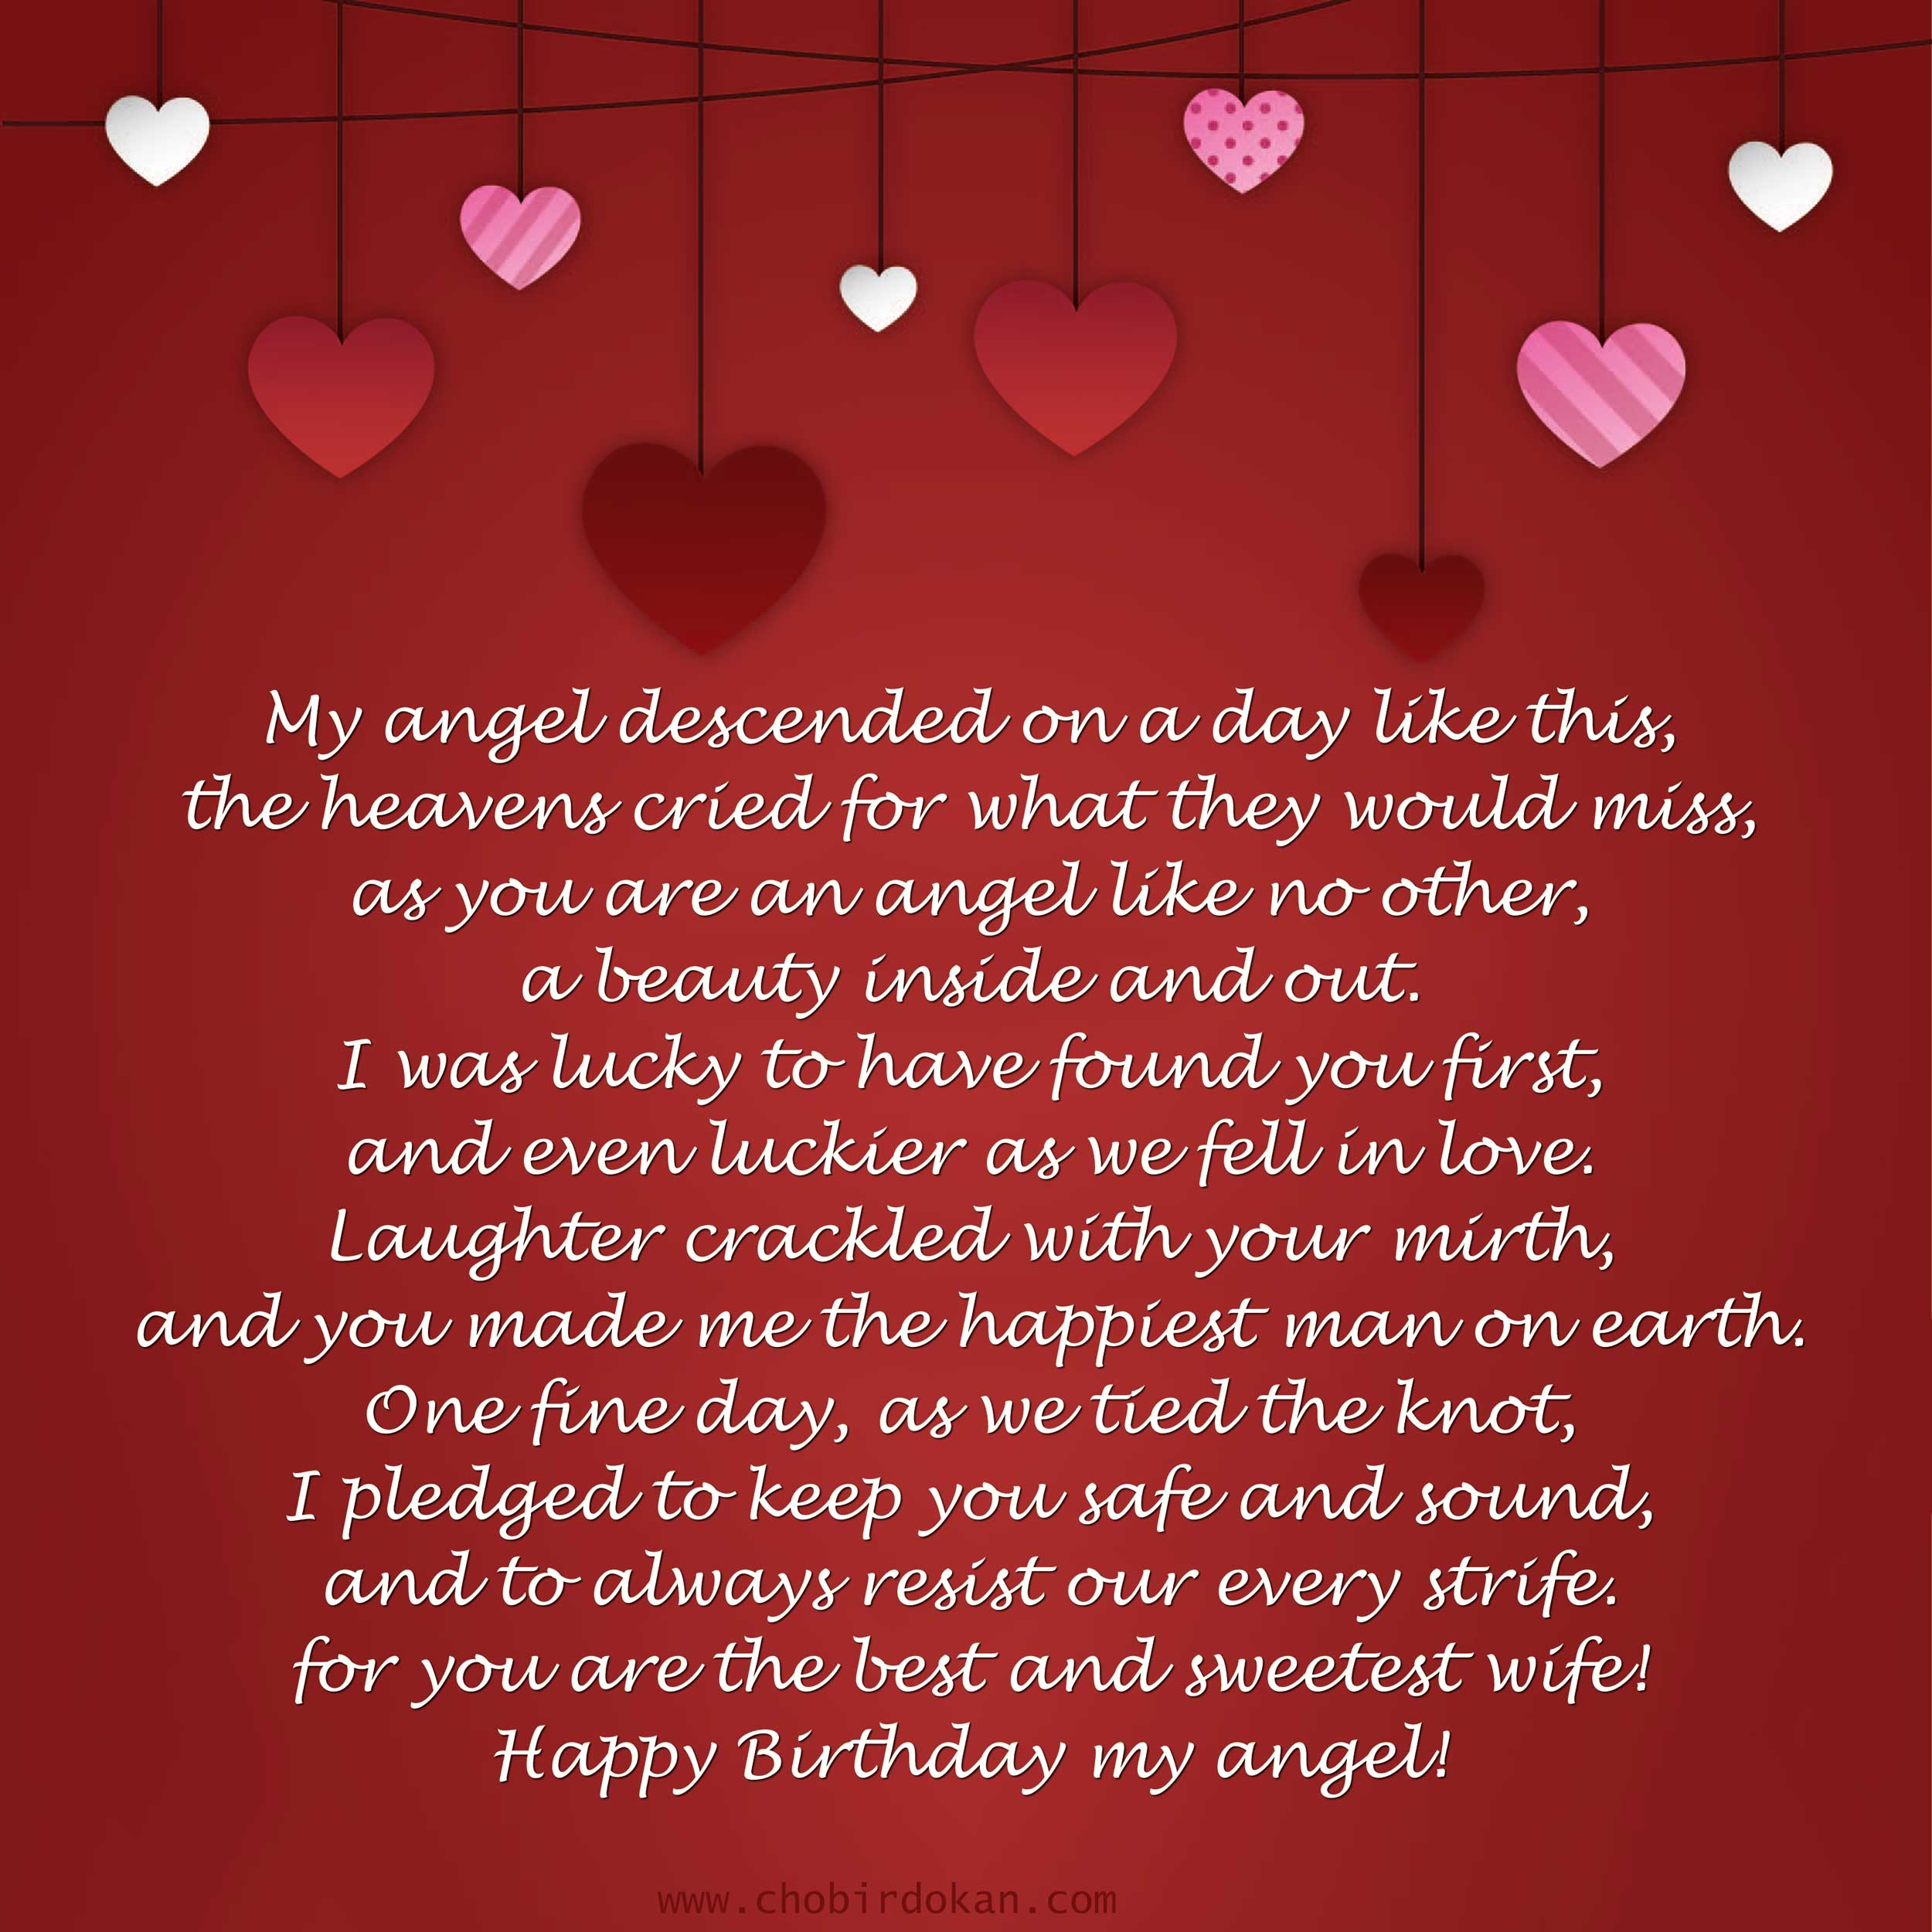 happy birthday wife wallpaper ; awesome-romantic-poem-for-her-images-high-quality-wallpaper-rtic-happy-birthday-poems-girlfriend-or-wife-of-pc